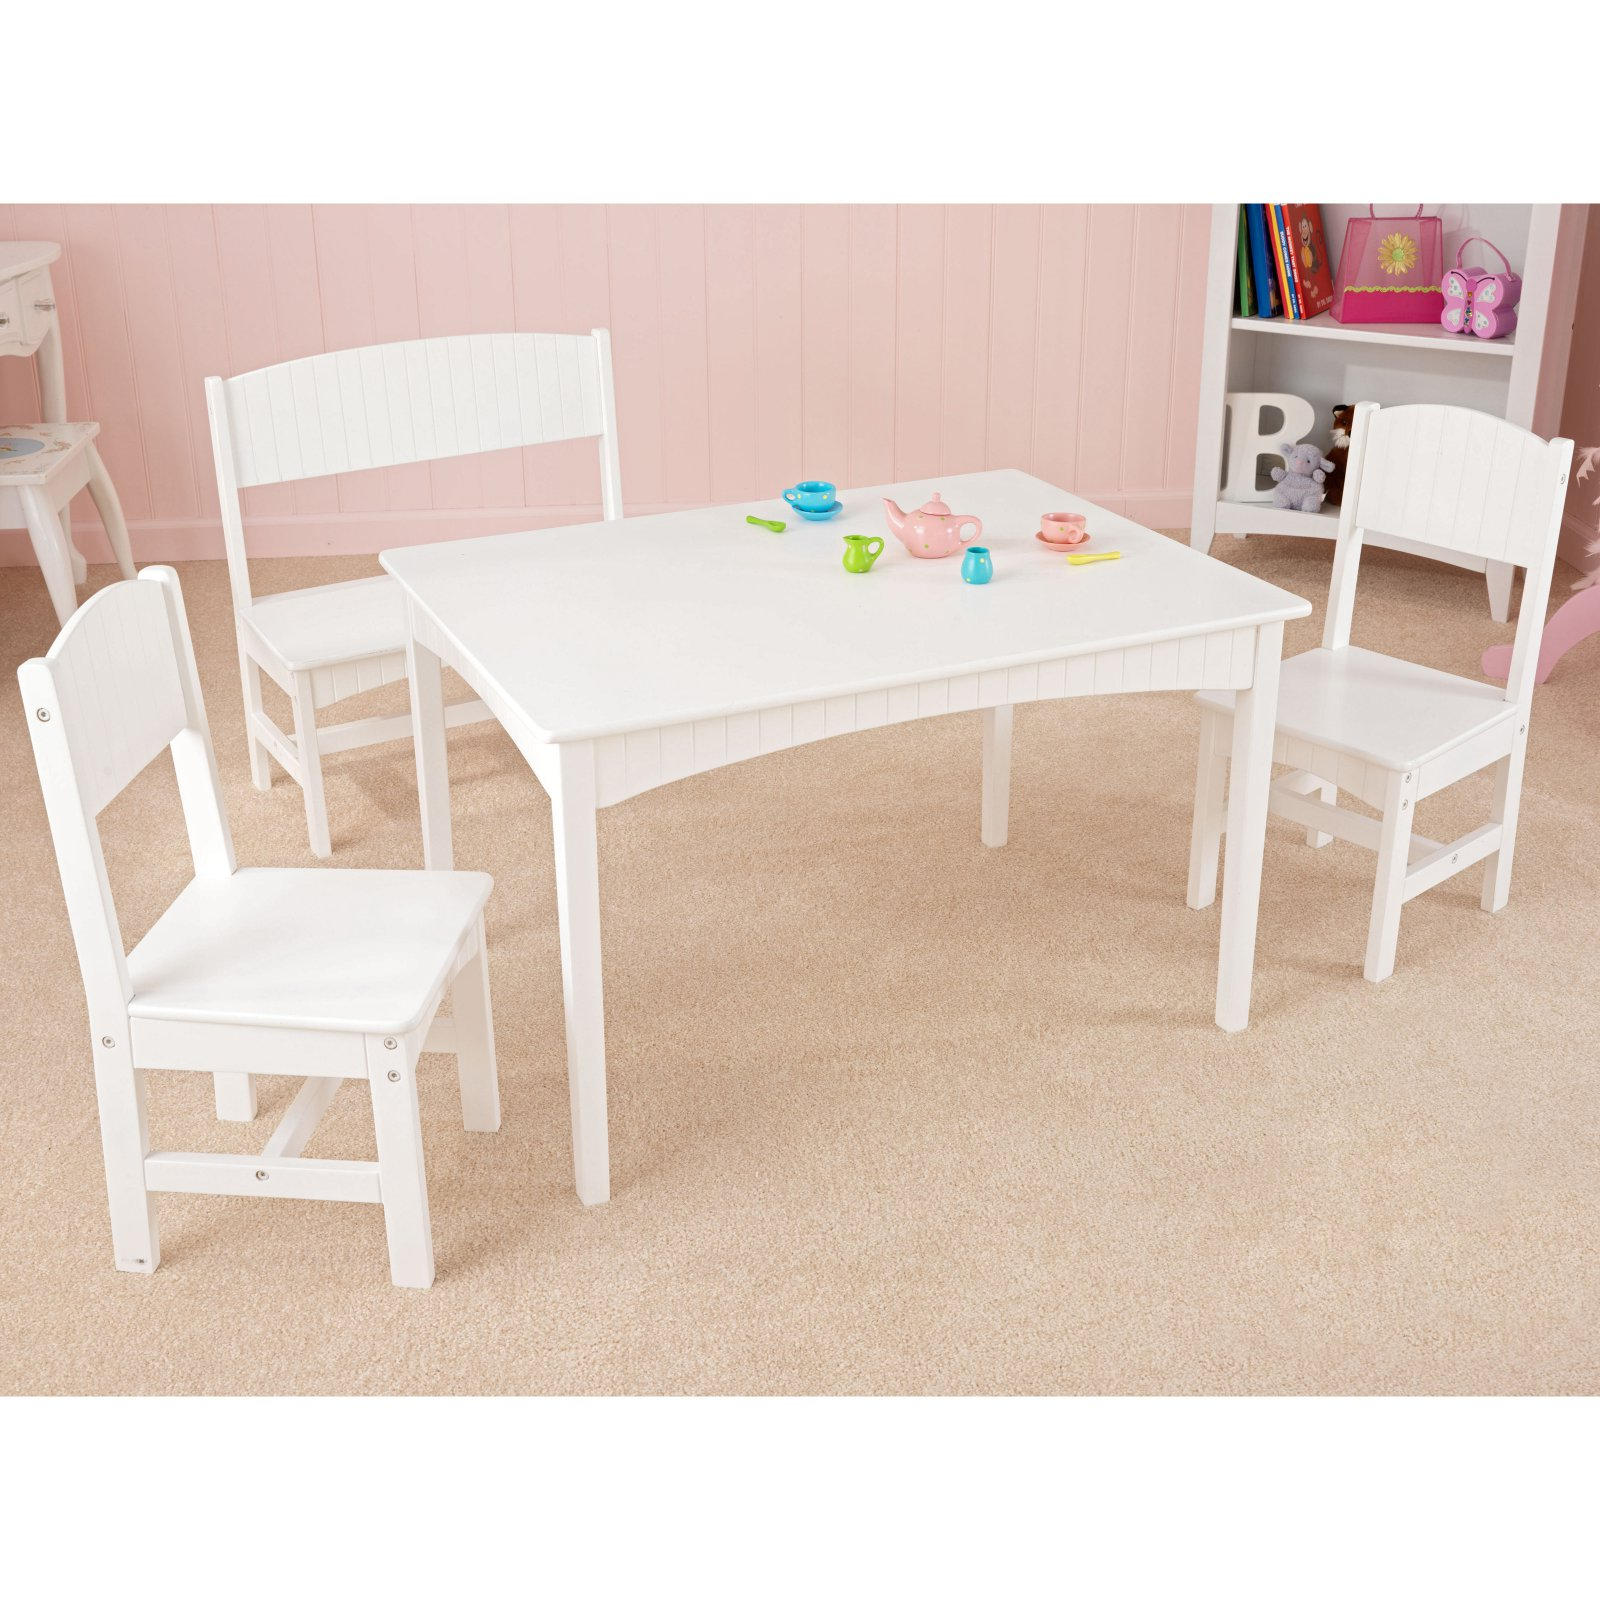 KidKraft Nantucket Kids 4 Piece Table and Chair Set  sc 1 st  Walmart & KidKraft Aspen Table u0026 2 Chair Set Multiple Colors - Walmart.com